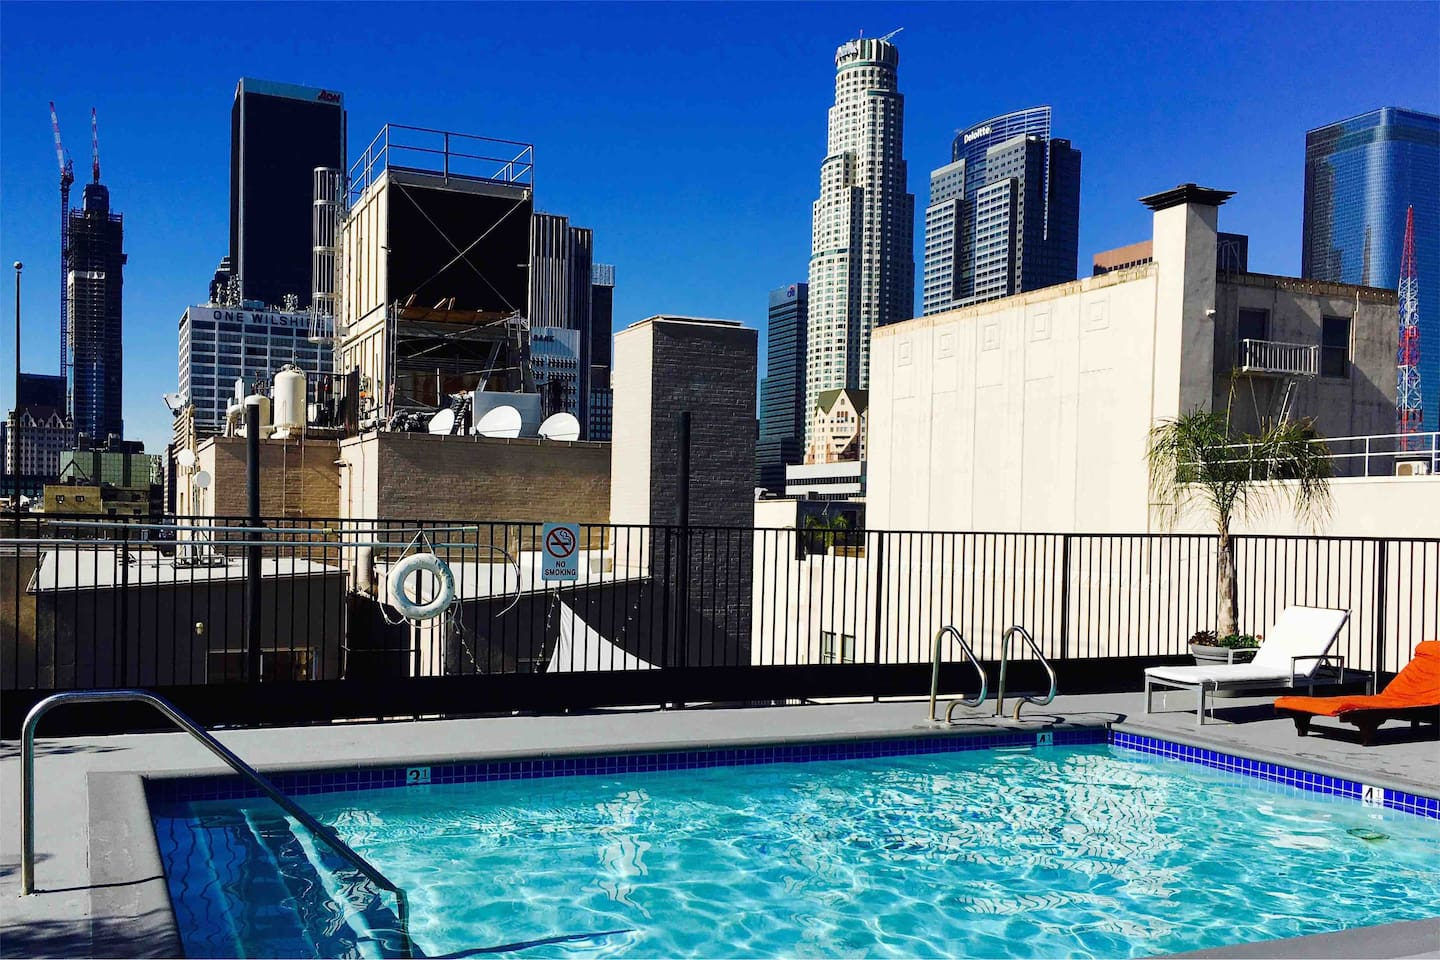 Your room keys grant you access to our rooftop pool deck, lounge and jacuzzi with a view of downtown Los Angeles! Open nightly until 10pm, midnight on weekends!